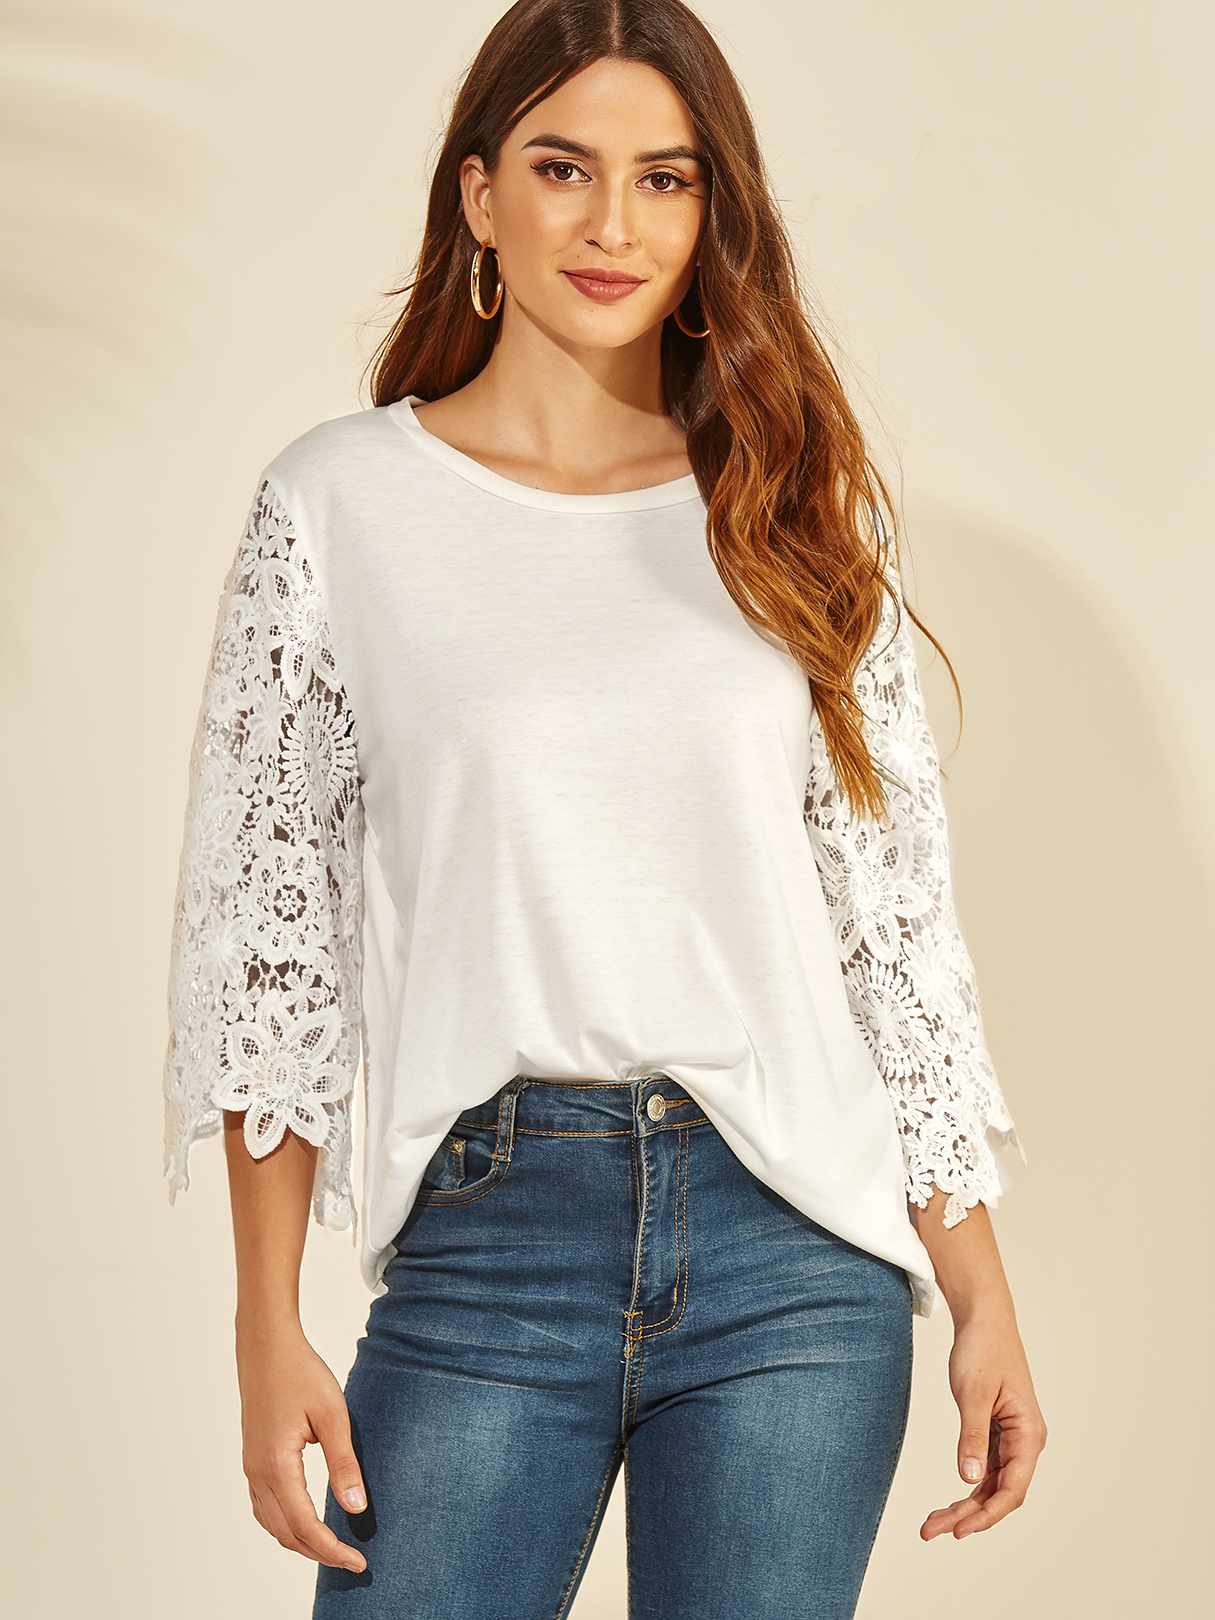 White Lace Insert Round Neck 3/4 Length Sleeves Blouse TOPS Blanc Blouses s|m|l|xl Yoins